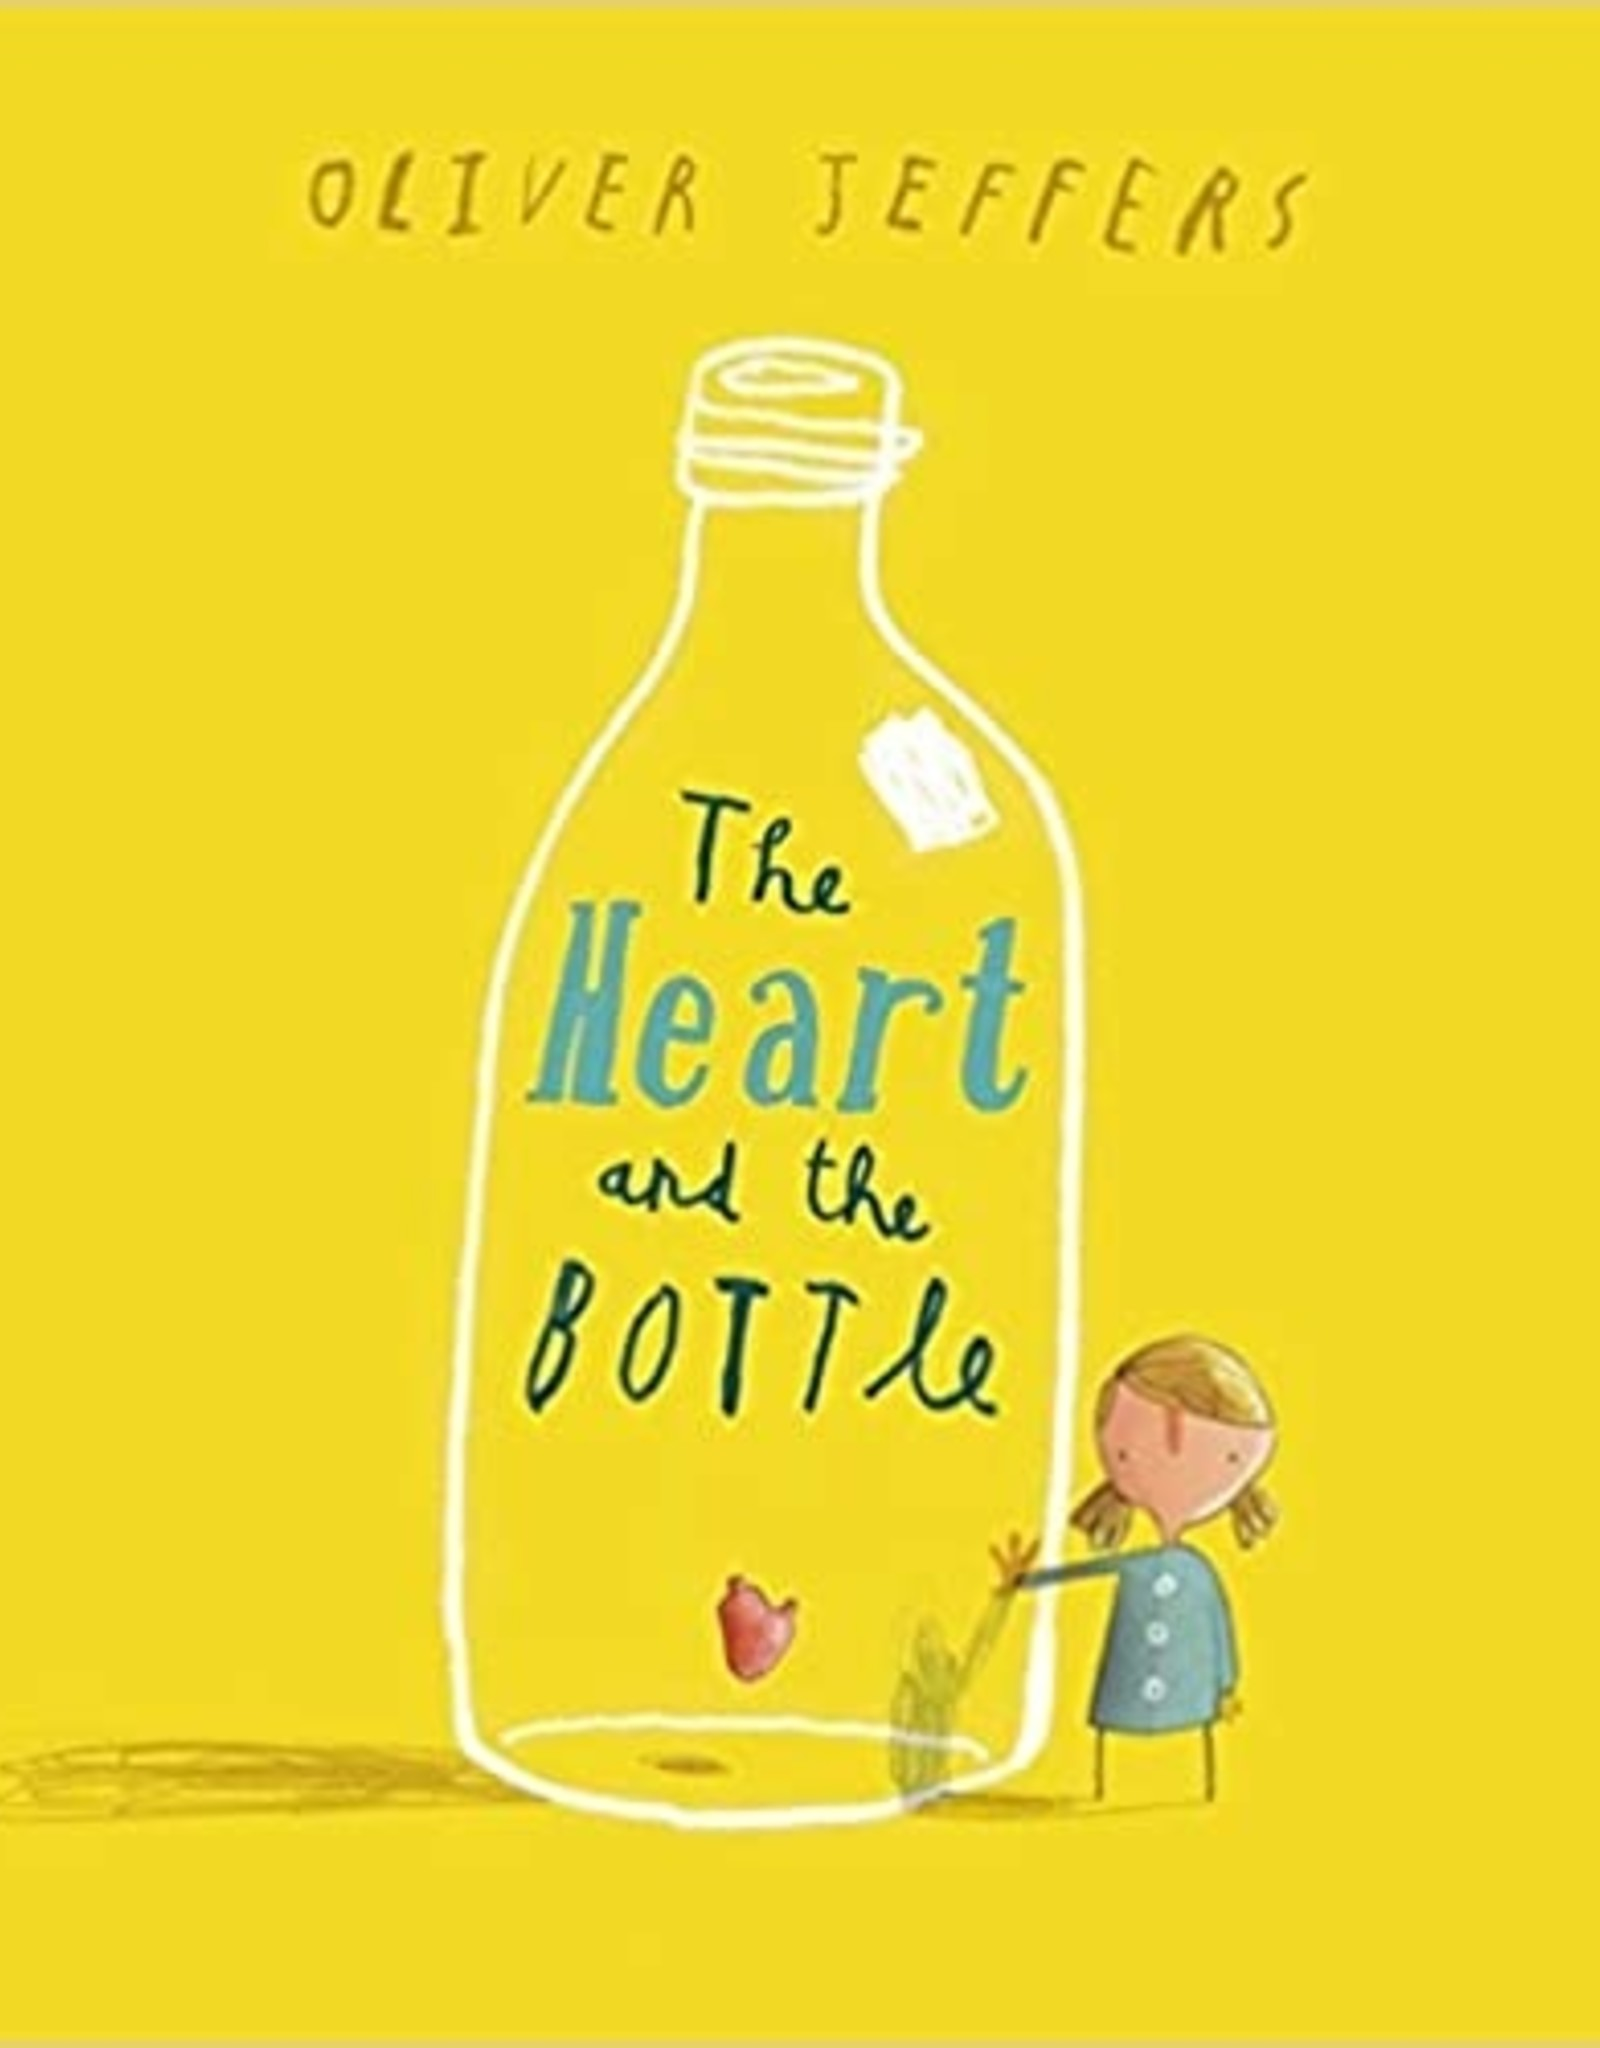 harper collins The Heart and the Bottle Oliver Jeffers